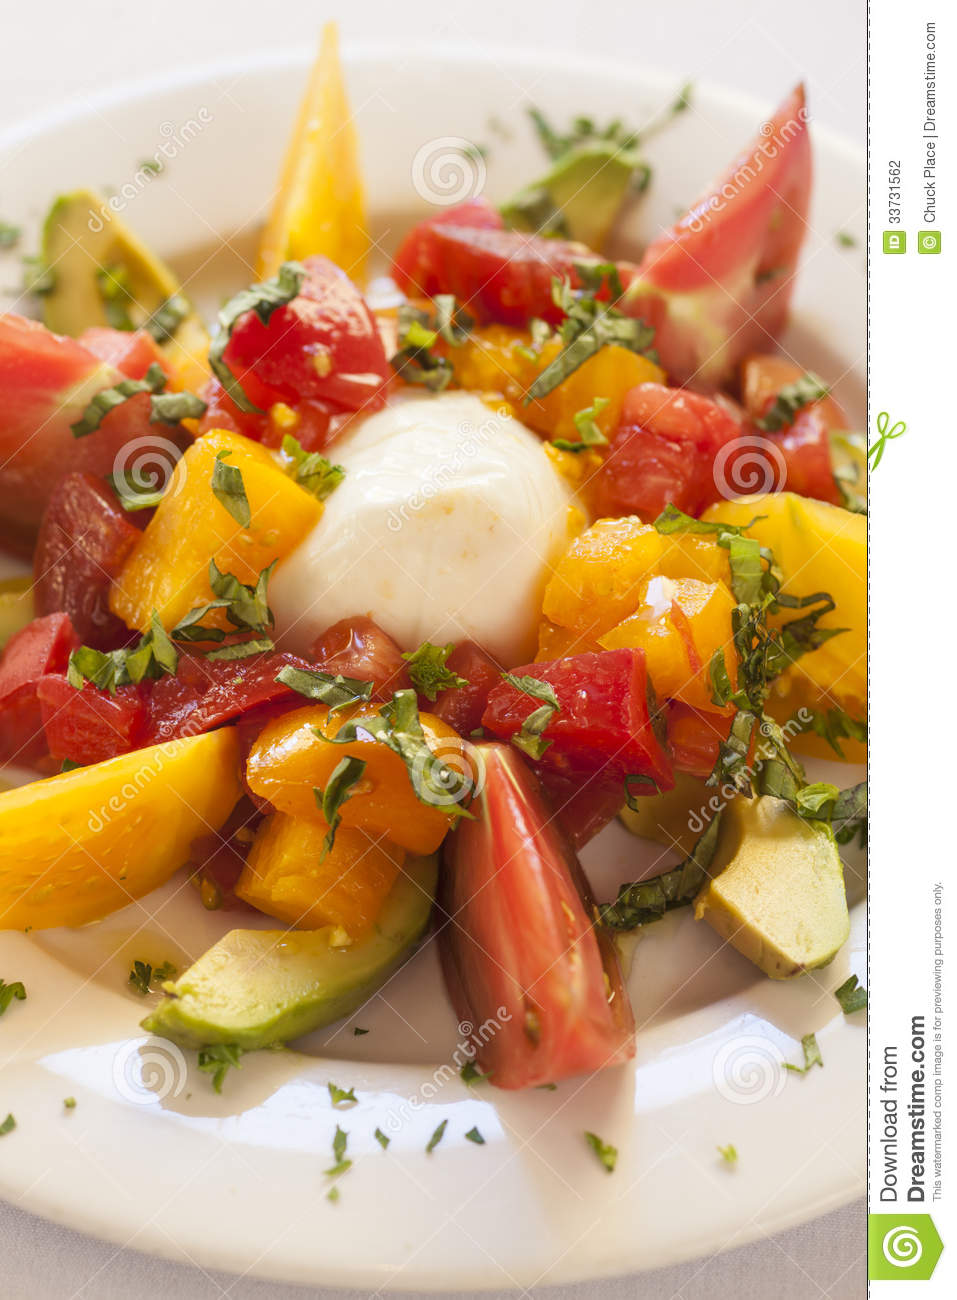 Caprese Salad With Cheese, Tomato And Avocado Stock Photography ...